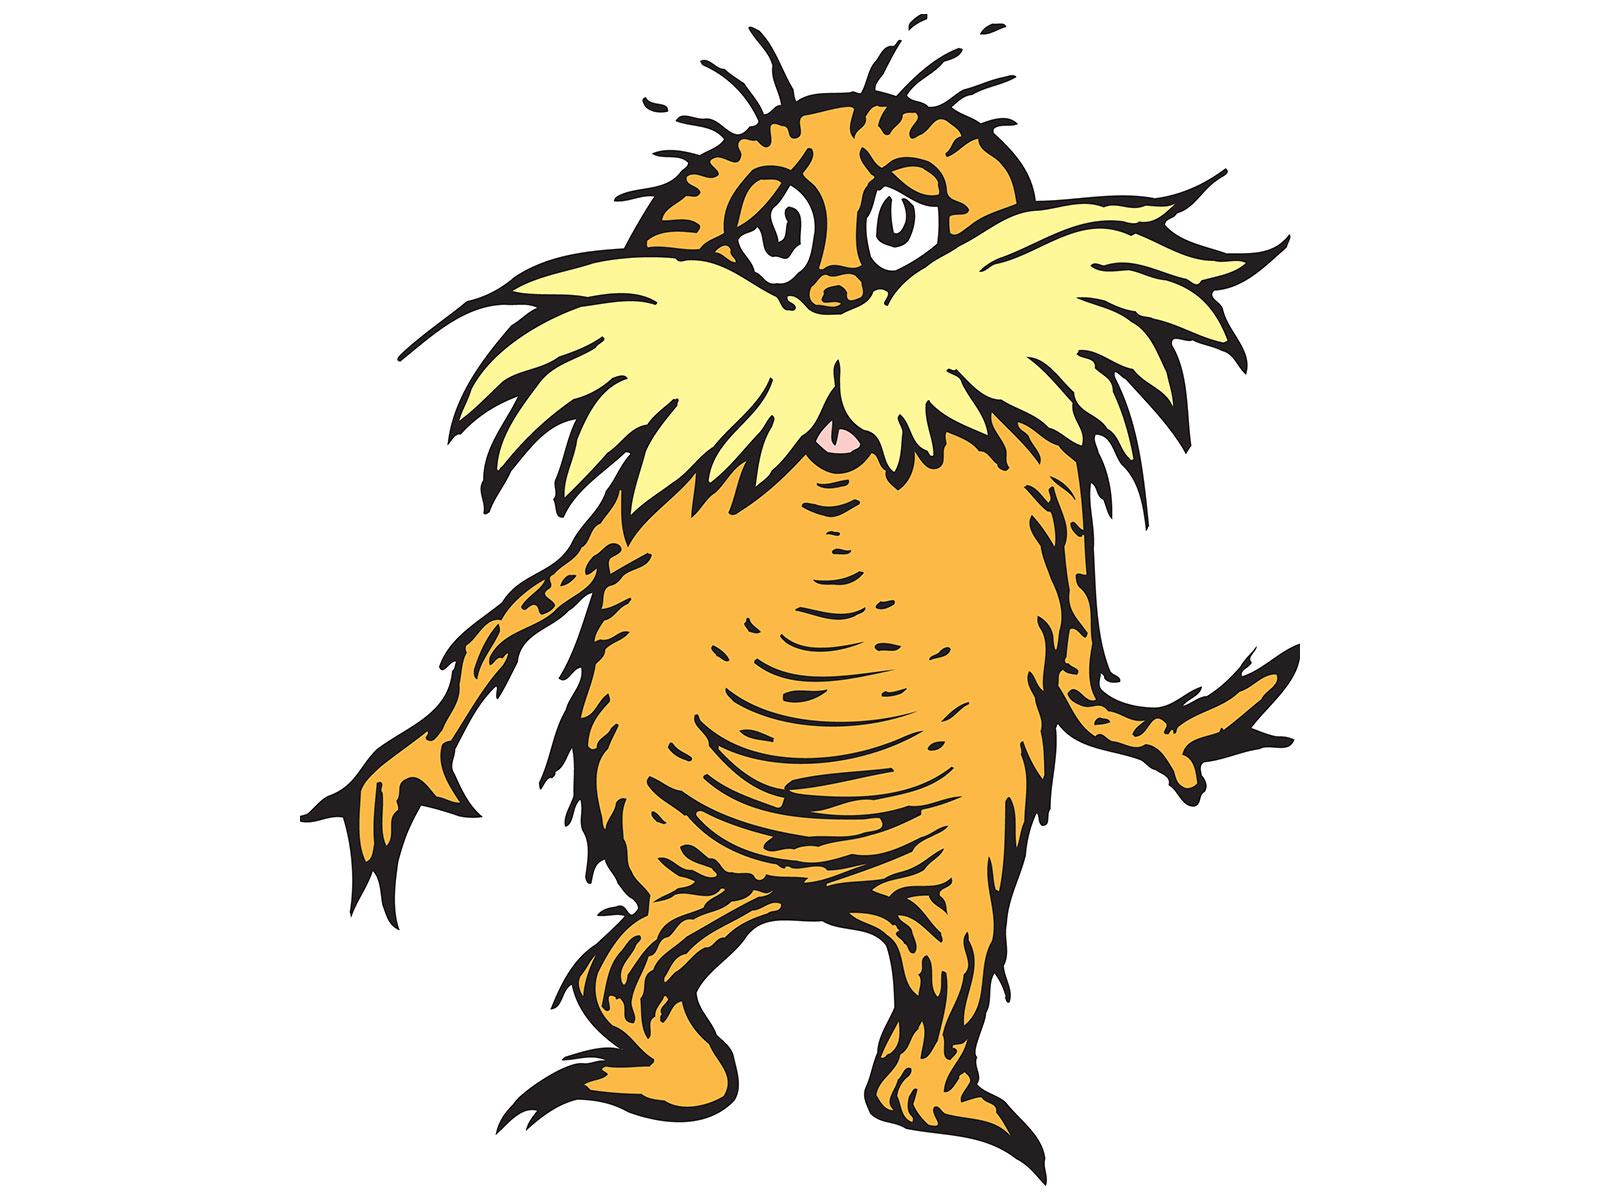 Dr seuss lorax clipart vector freeuse library New Research Suggests Dr. Seuss Modeled the Lorax on This Real-Life ... vector freeuse library